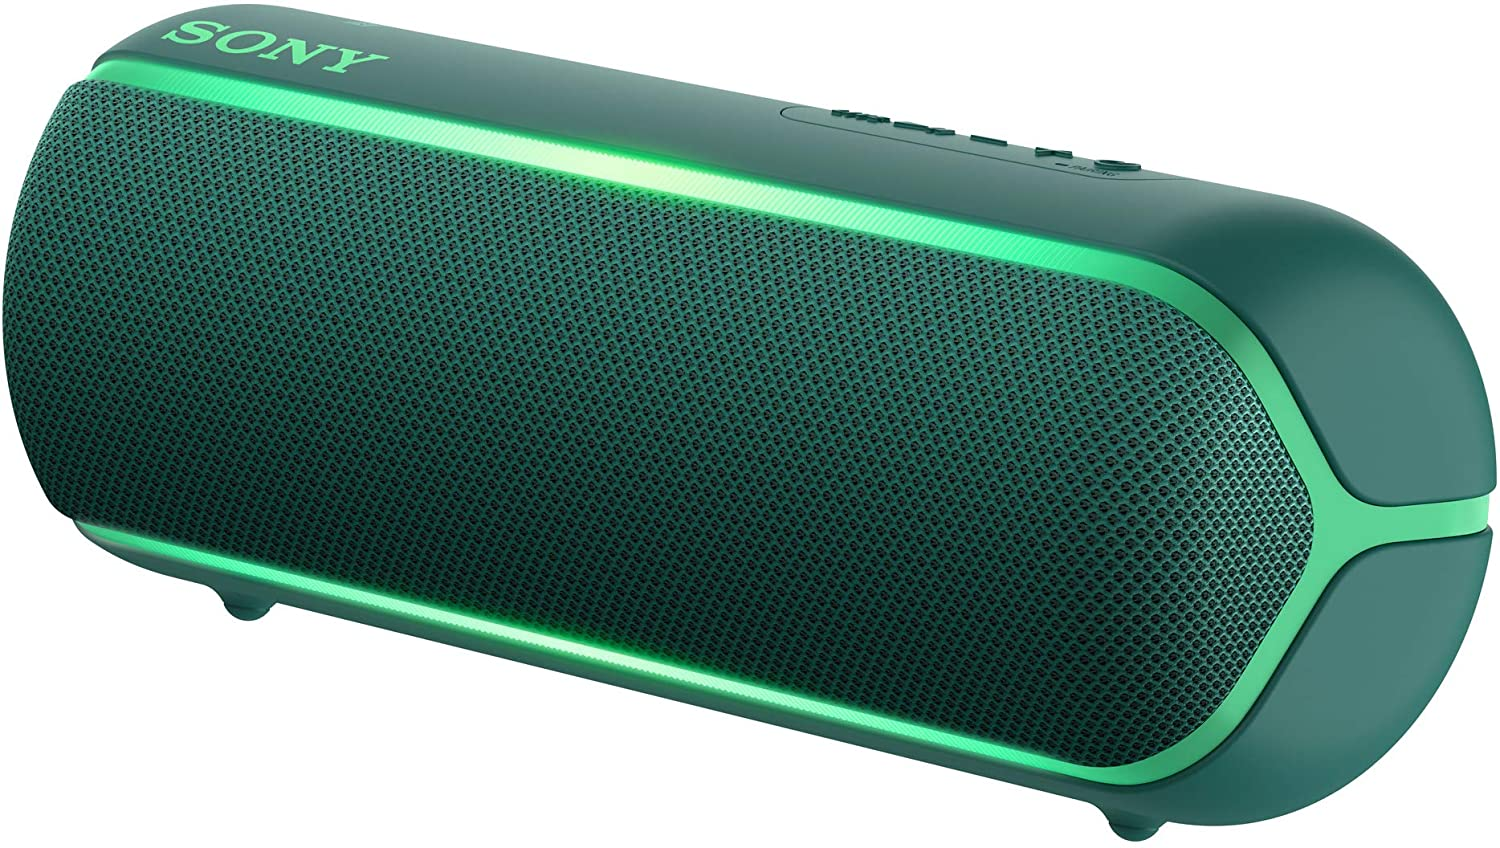 Sony SRS-XB22 Wireless Extra Bass Bluetooth Speaker with 12 Hours Battery Life (Green)